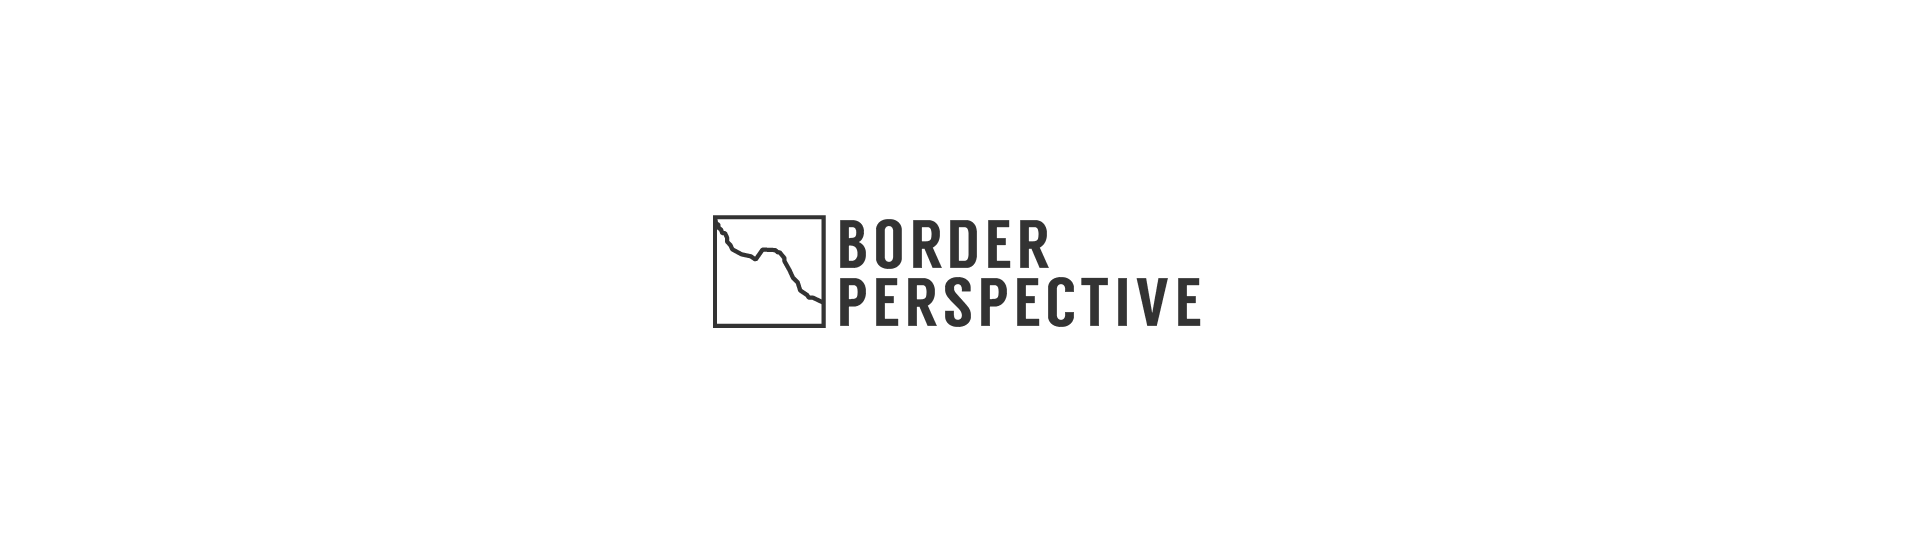 borders-01.png